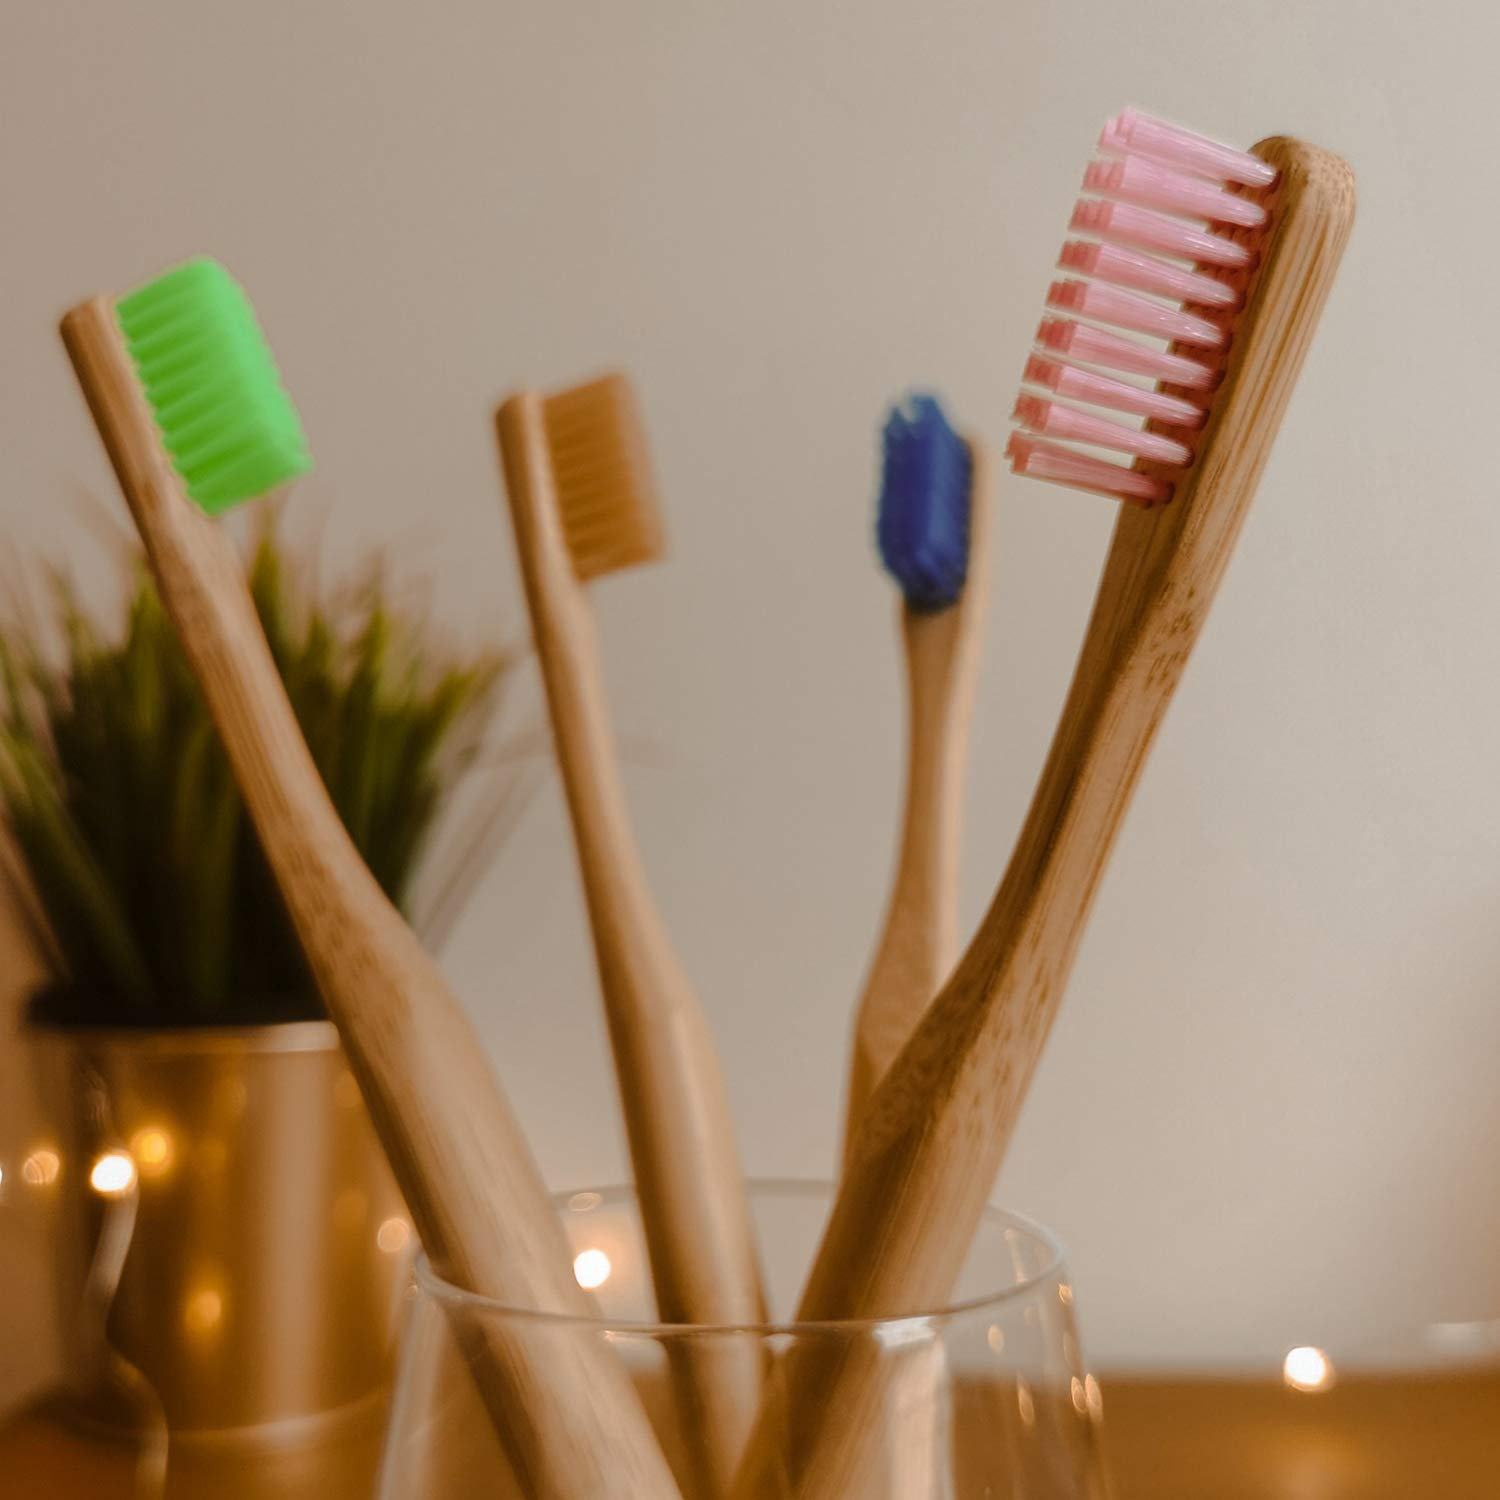 Brosses à dents réutilisables